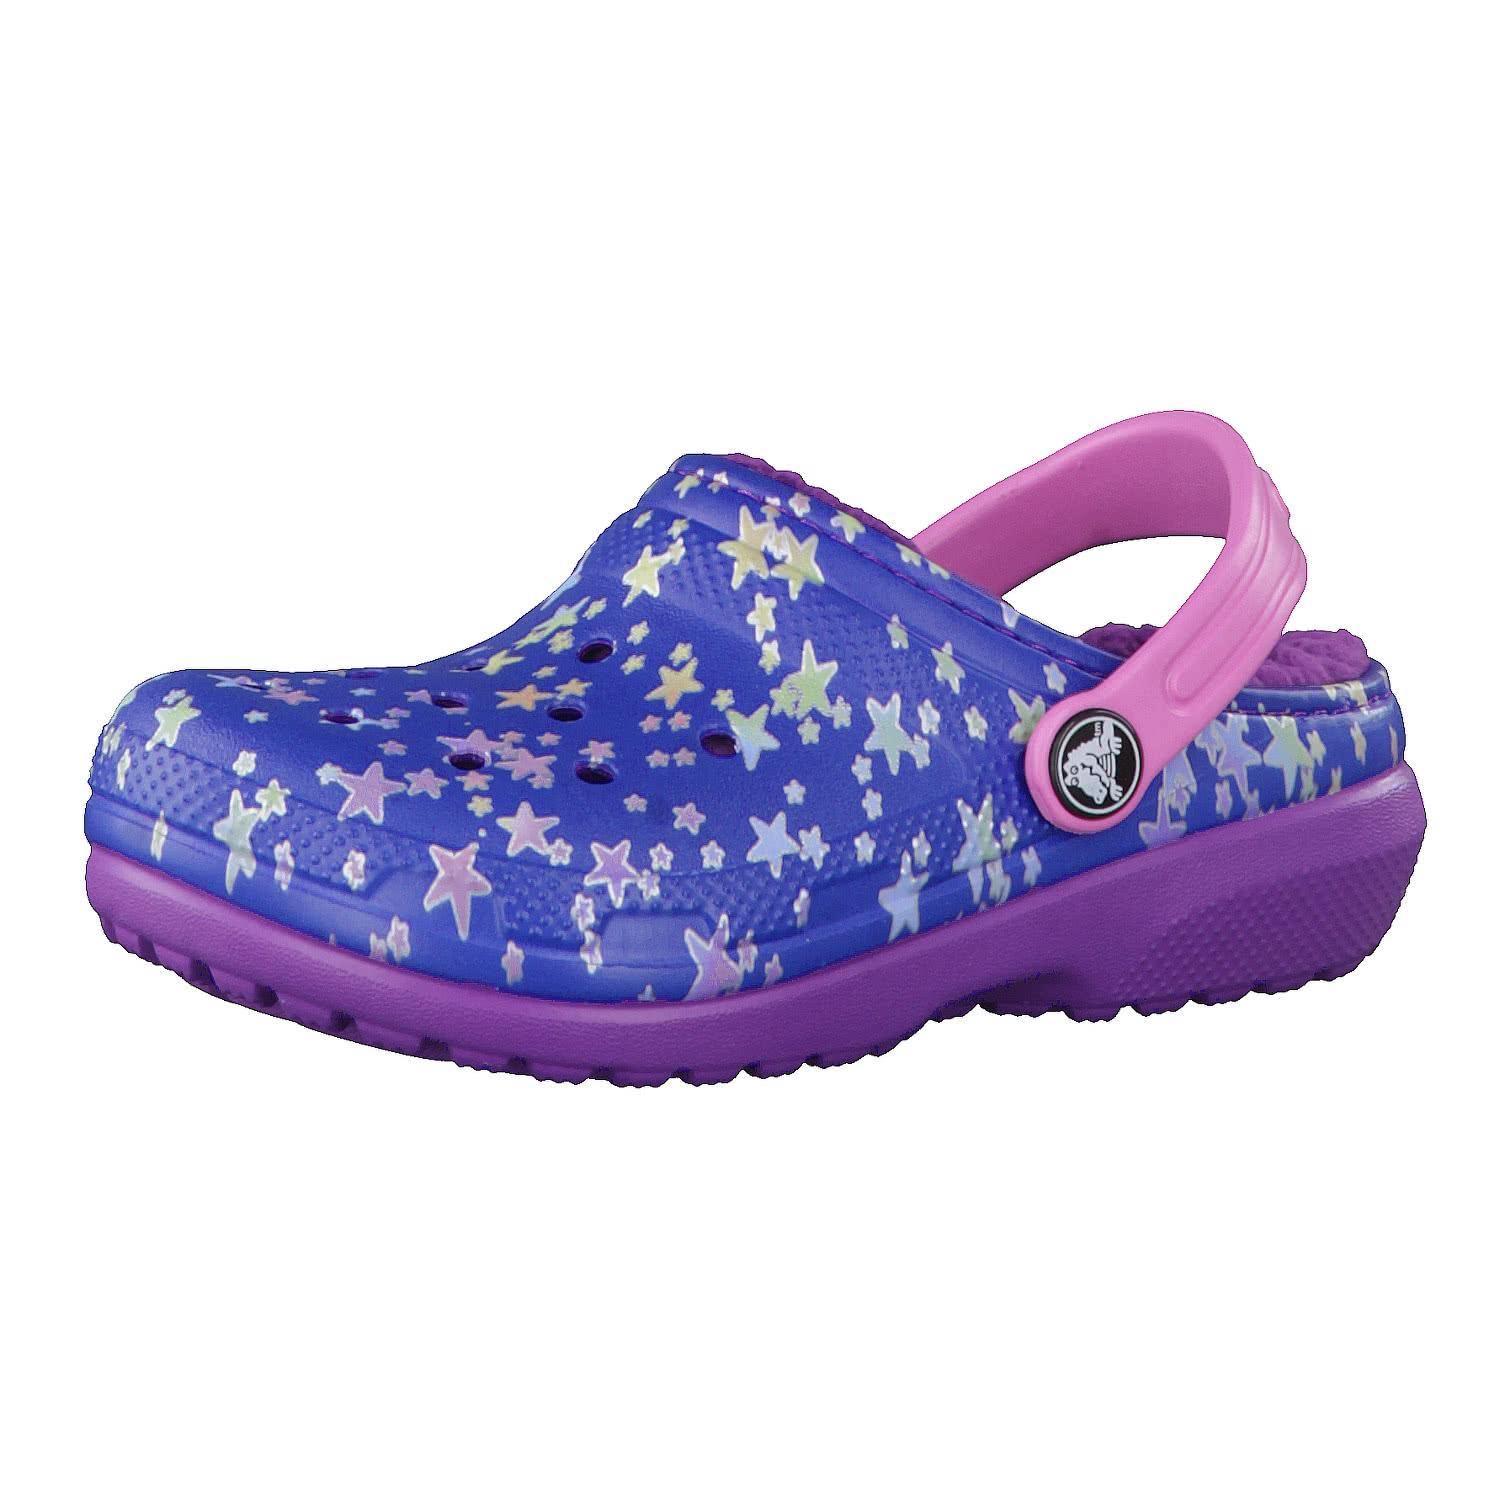 crocs Kinderschuhe Classic Lined Graphic Clog K 204817 Ocean/Navy 32-33 zX8z5gC8